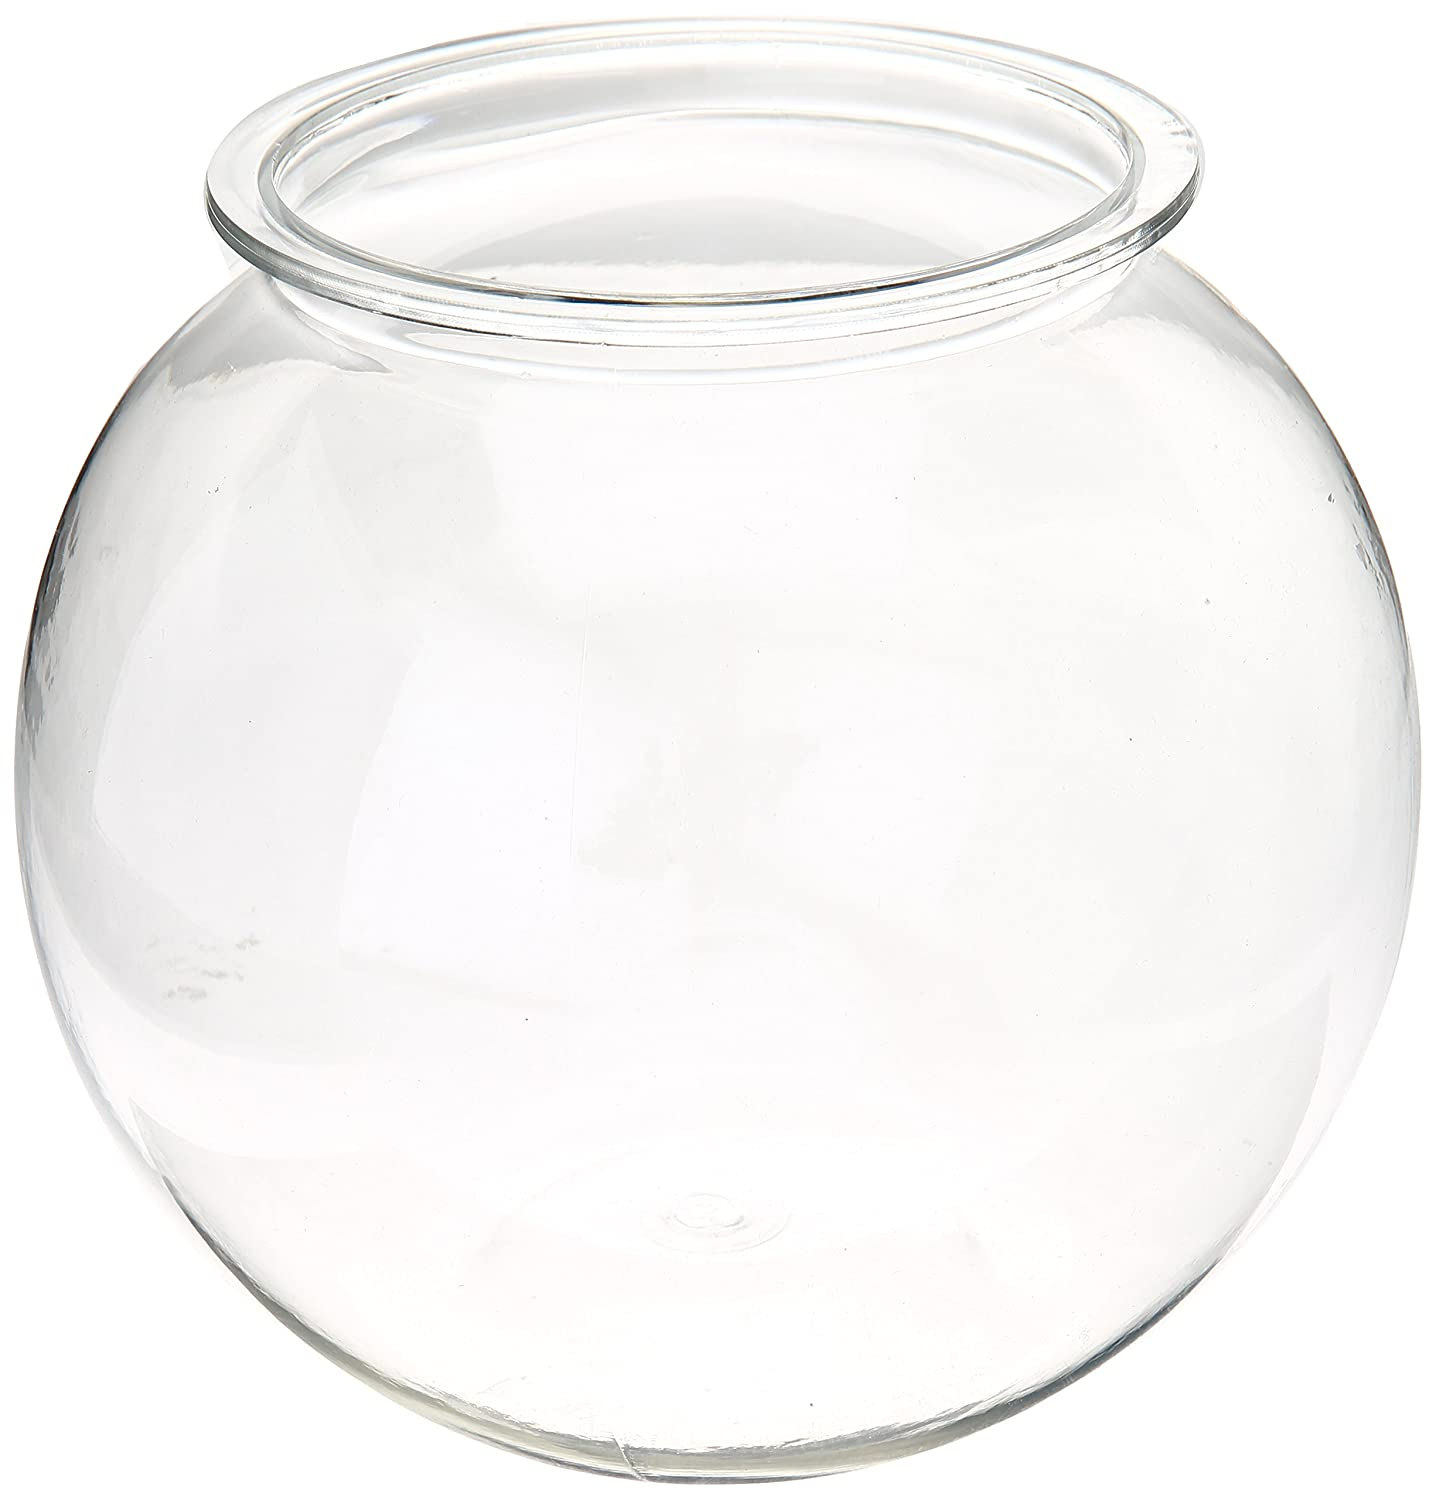 Plastic fish bowls best fish bowls for How to make a fish bowl